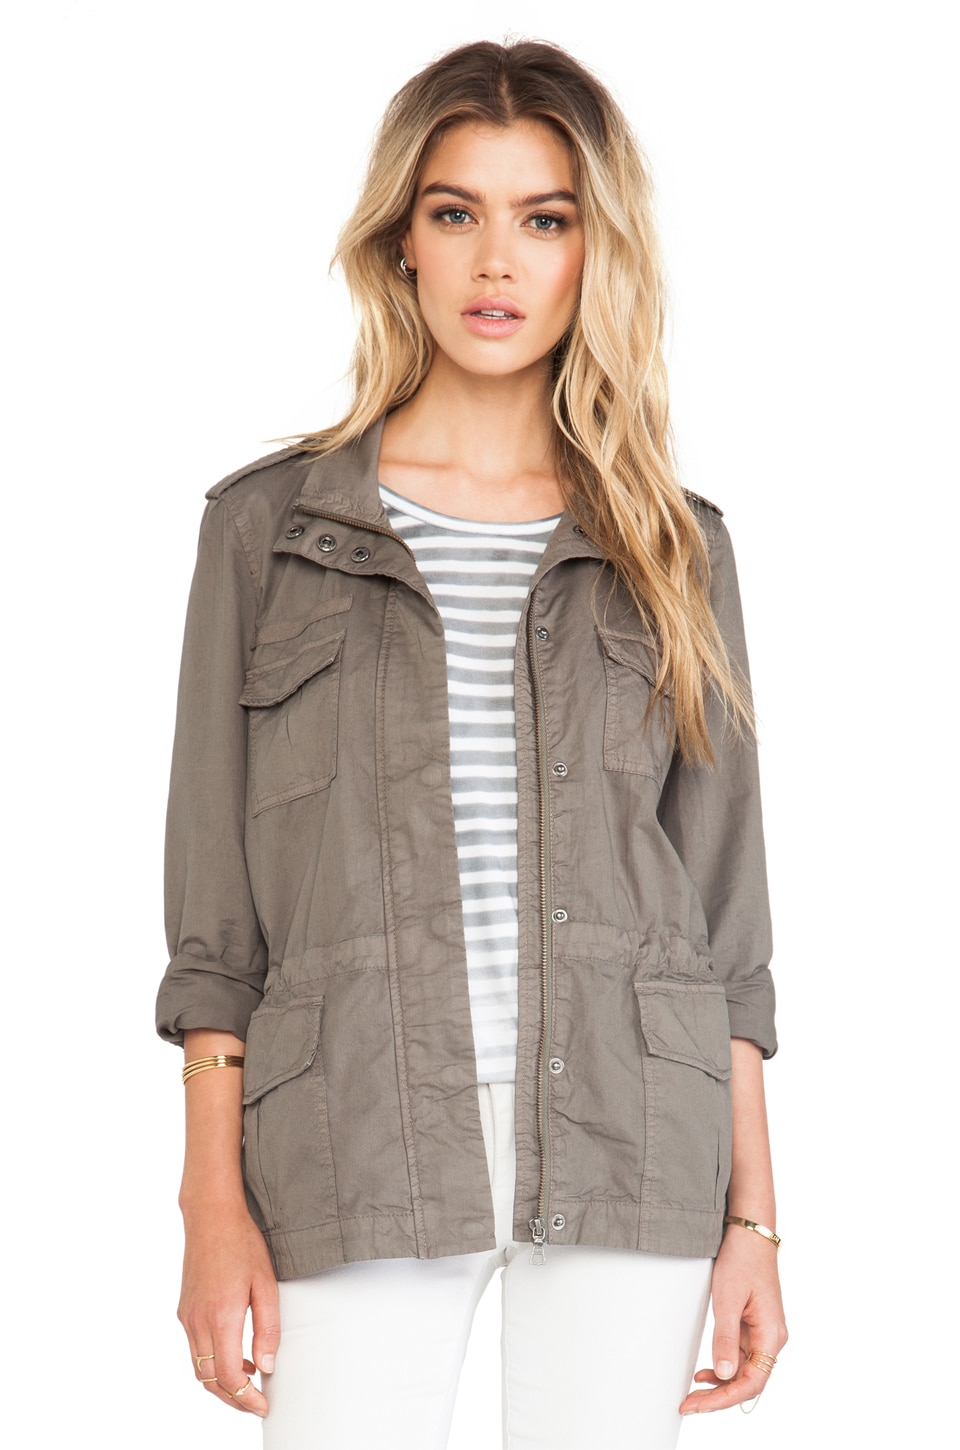 Soft Joie Elexus Jacket in Fatigue